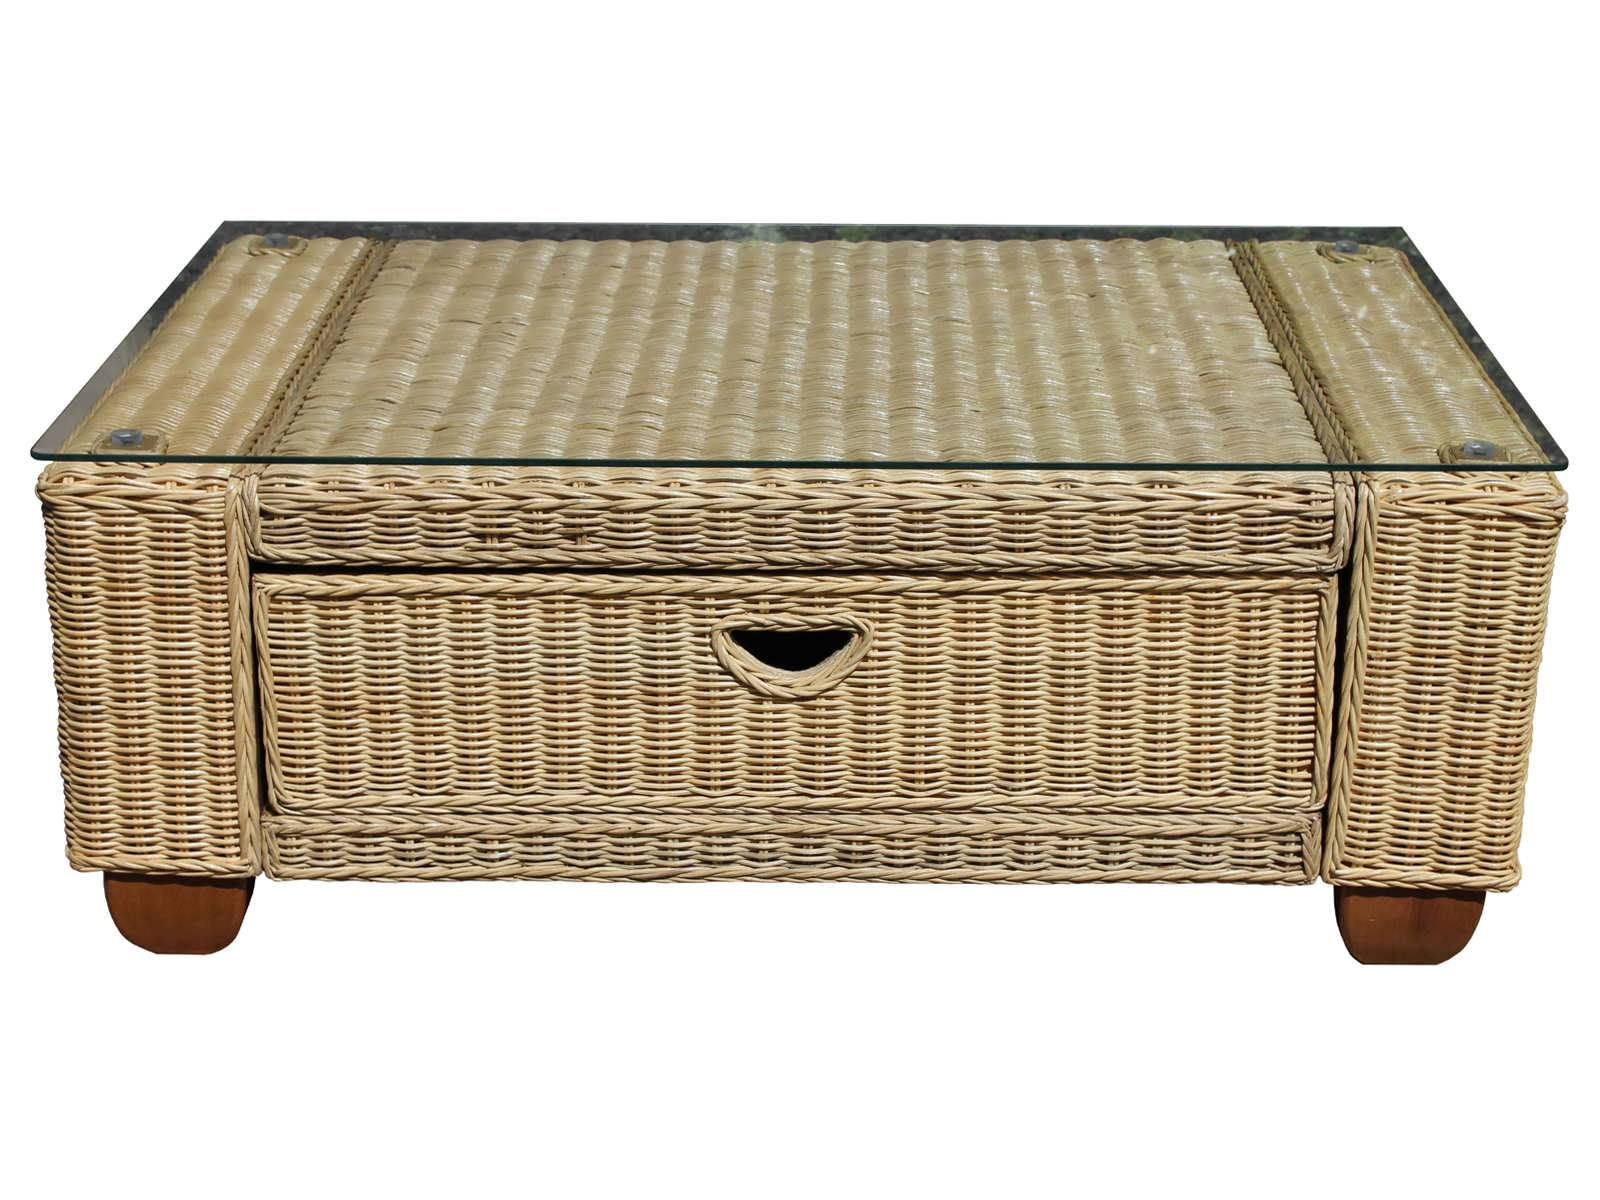 Kingston wicker coffee table Coffee table with wicker baskets